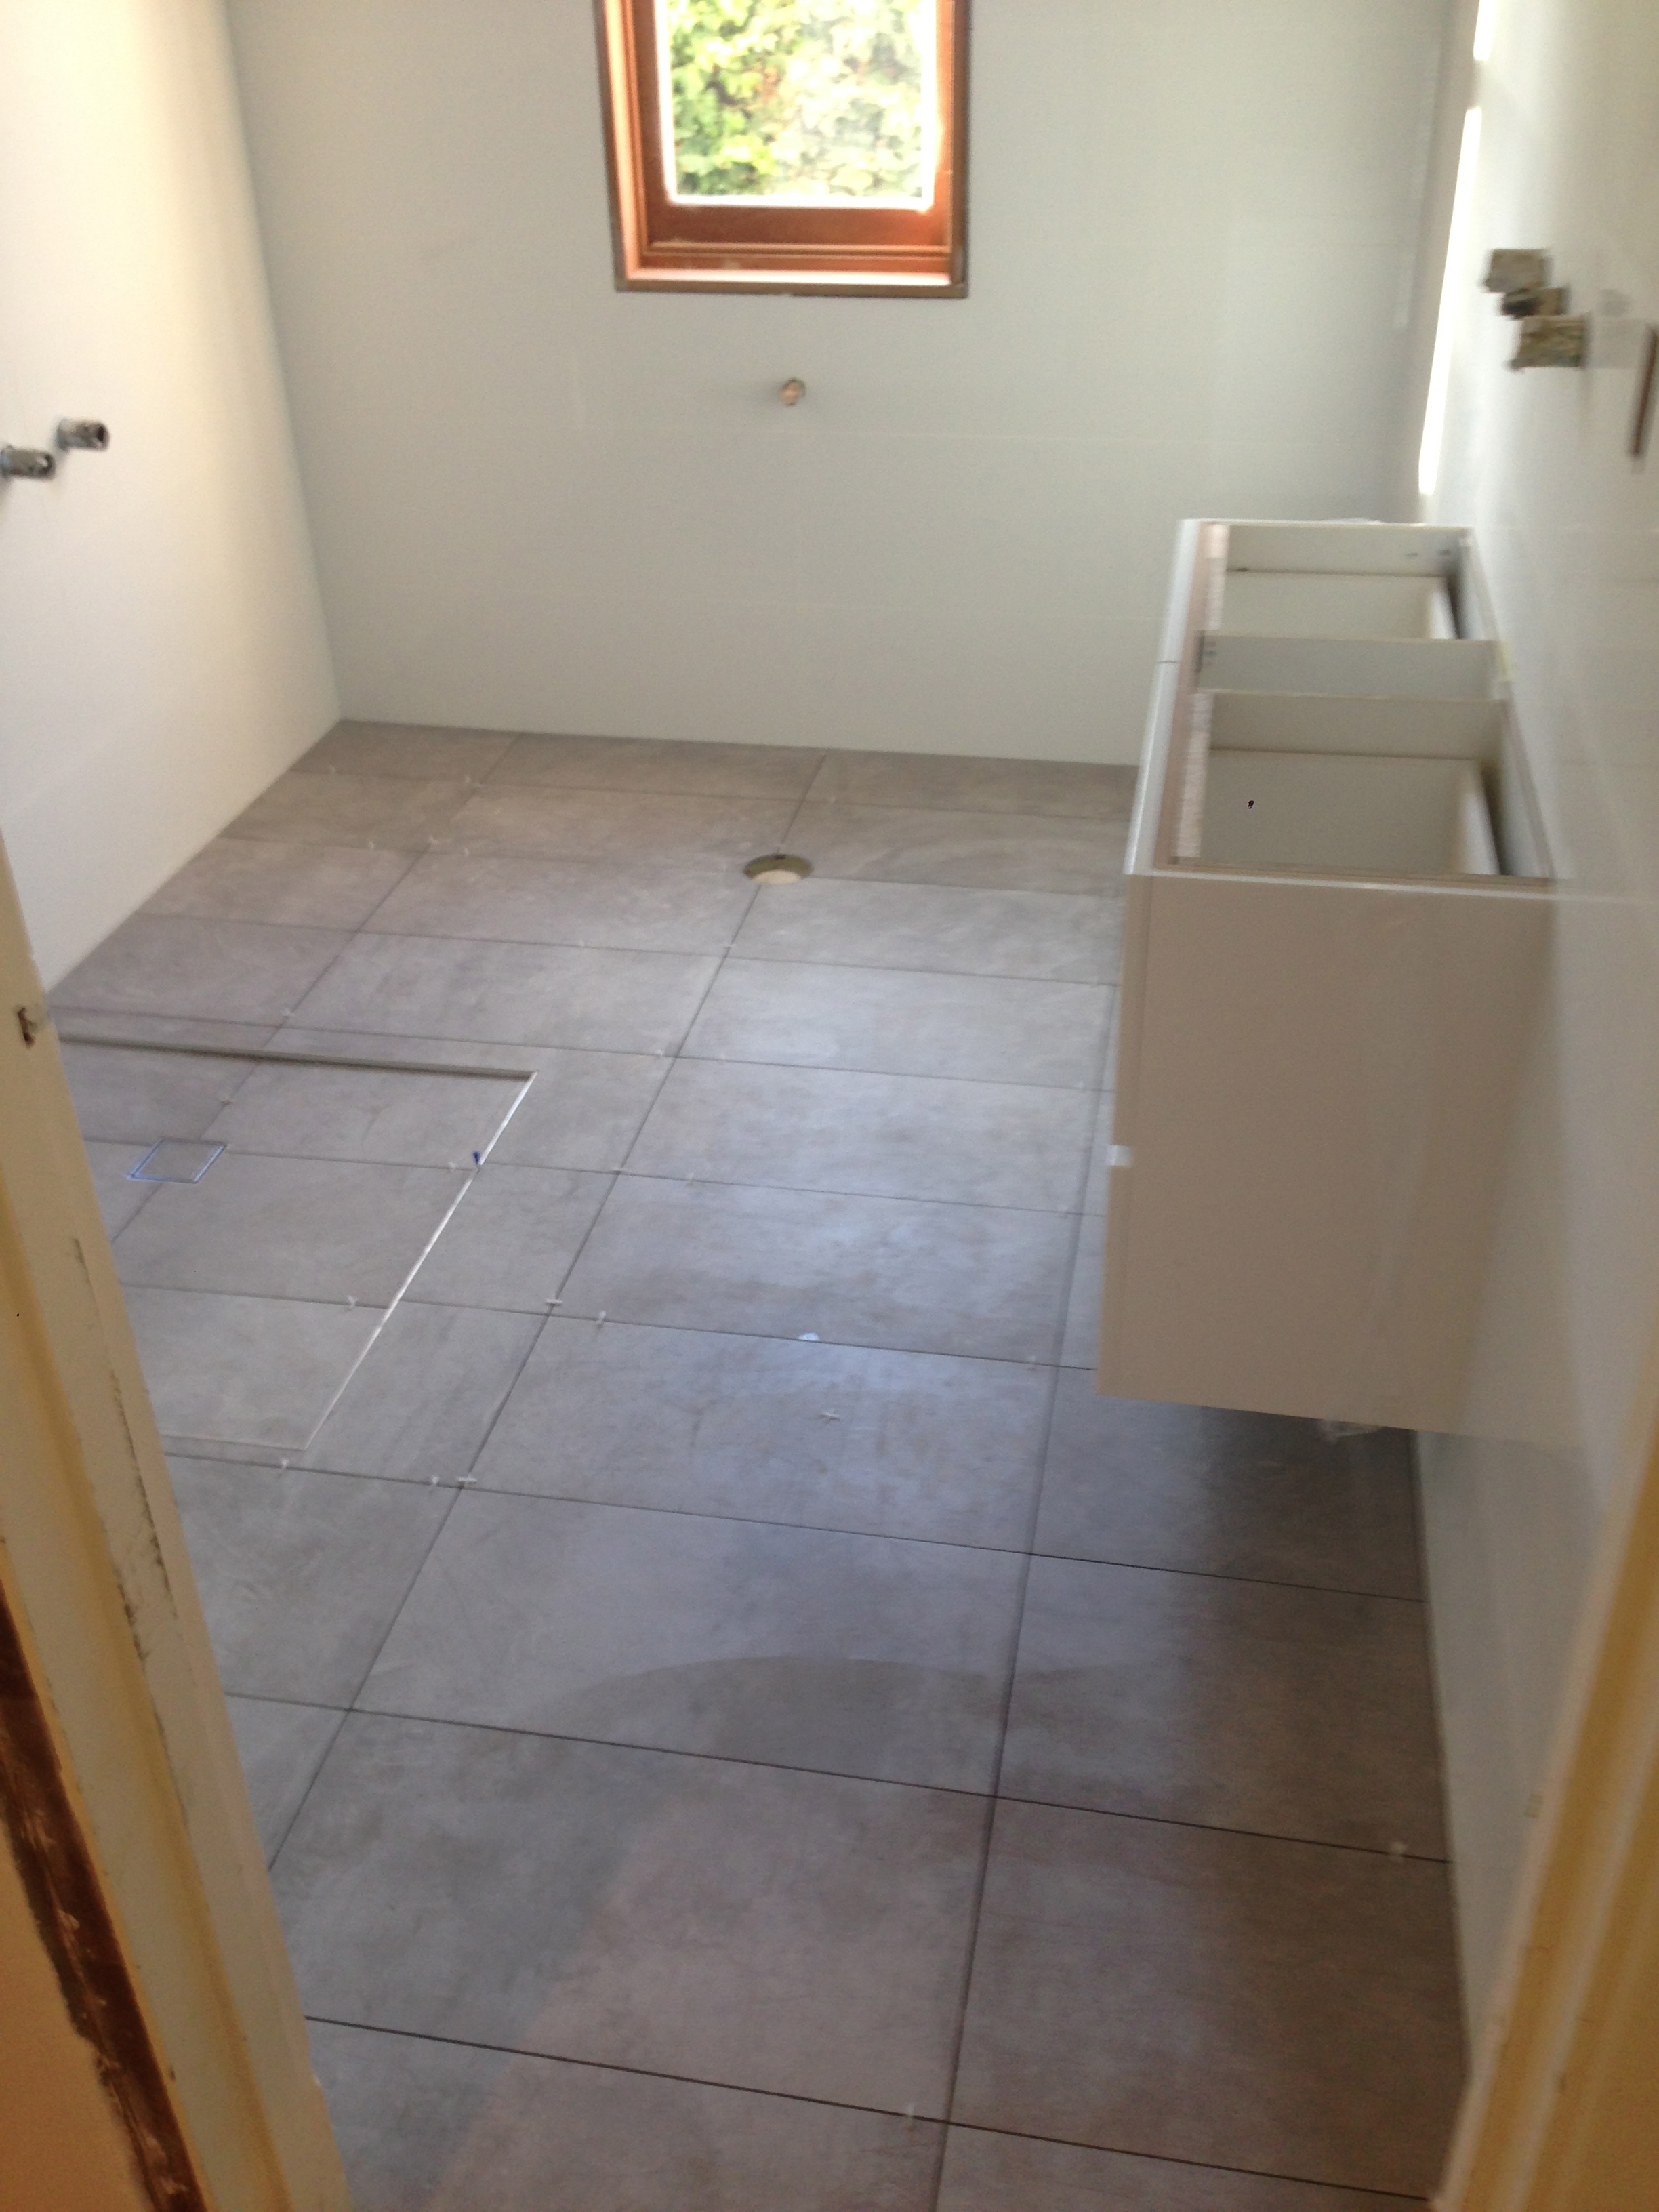 Tiling in perth perth tiling effective tiling solutions floor tiling perth floor tiling perth floor tiling perth dailygadgetfo Choice Image